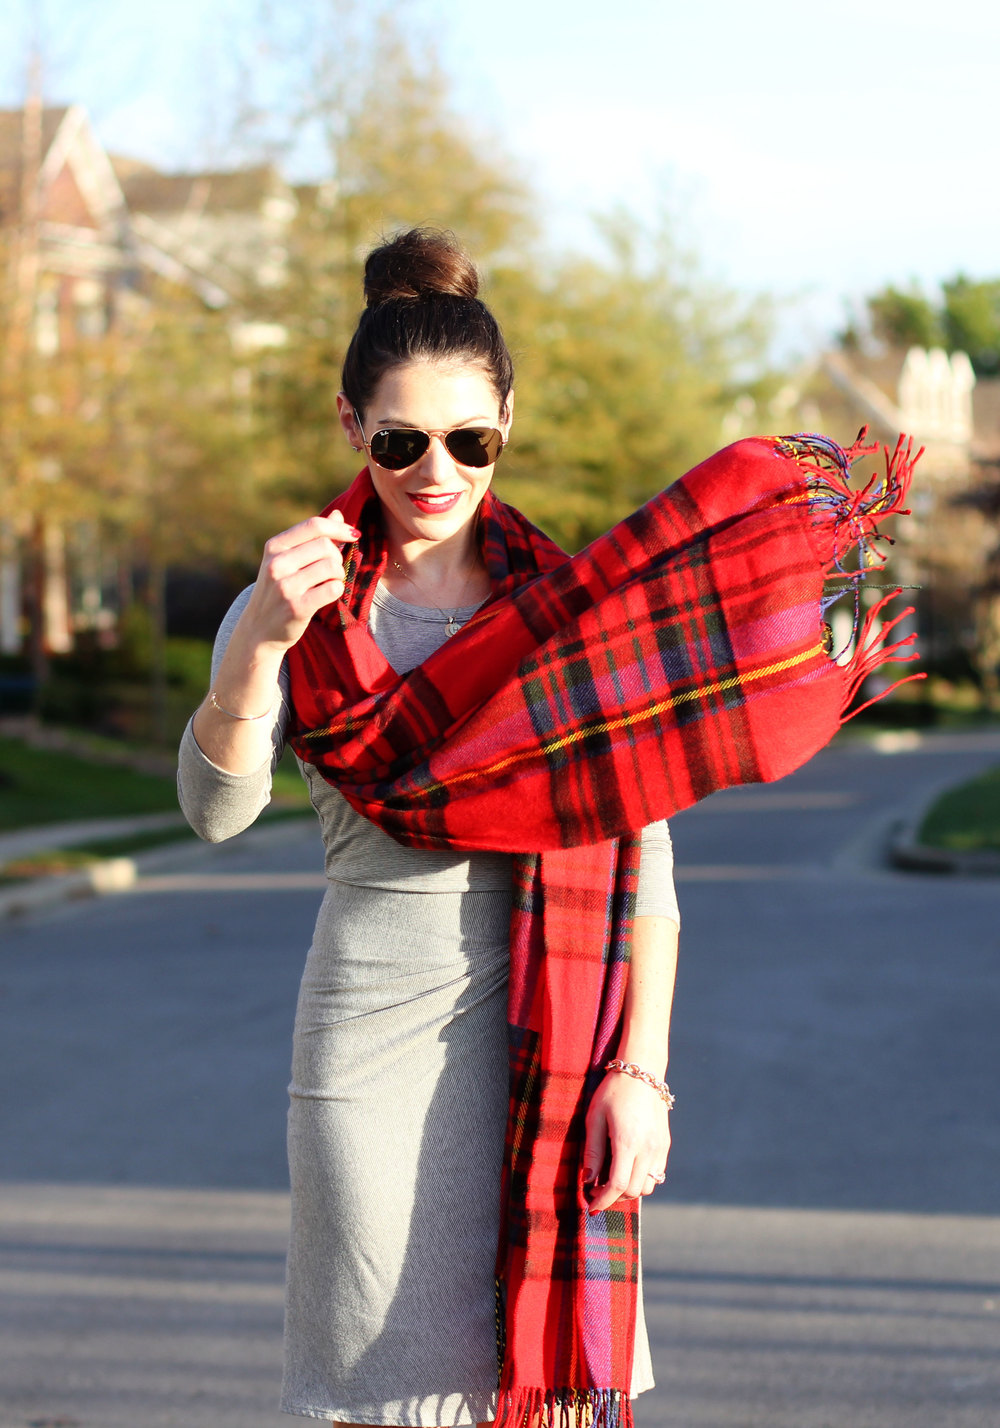 Anthropologie Amadi Knotted Knit Dress, Plaid Blanket Scard, Red Jessica Simpson Claudette Pumps, Casual Christmas Party Outfit, Red Longchamp